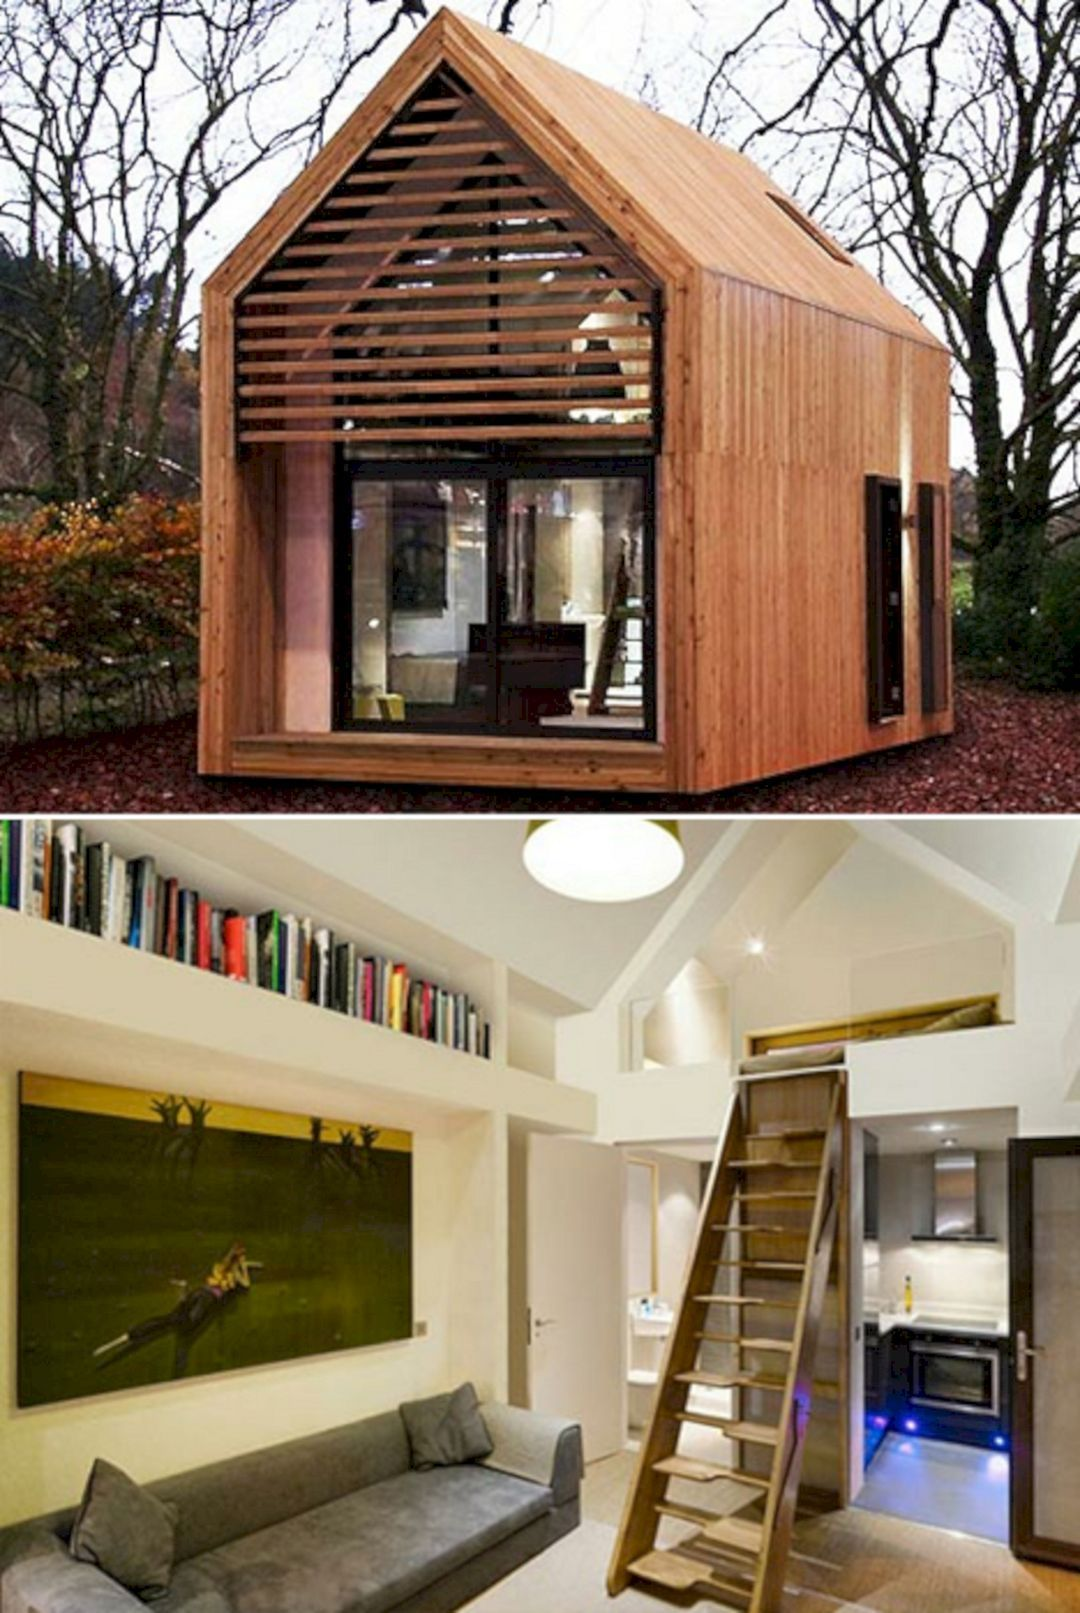 the best modern tiny house design small homes inspirations on best tiny house plan design ideas id=18708